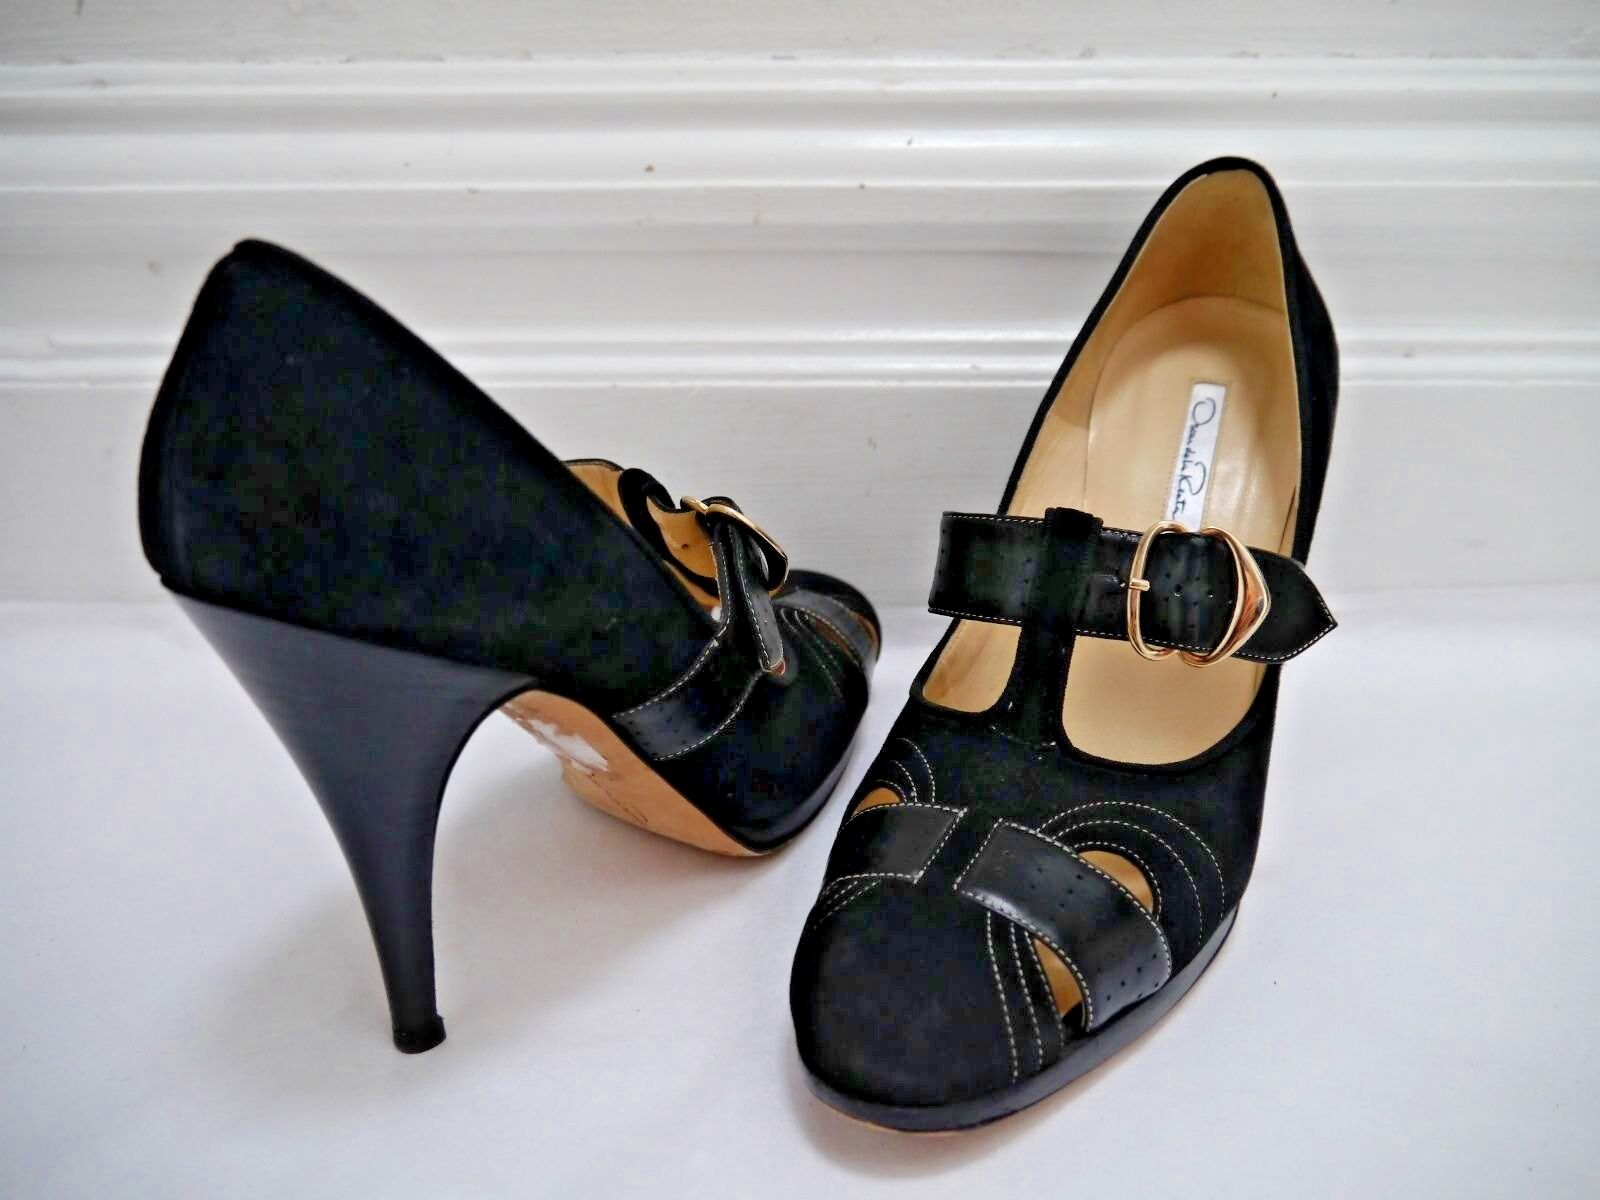 OSCAR DE LA RENTA black suede and leather cutout detail heels pumps Italian 39.5